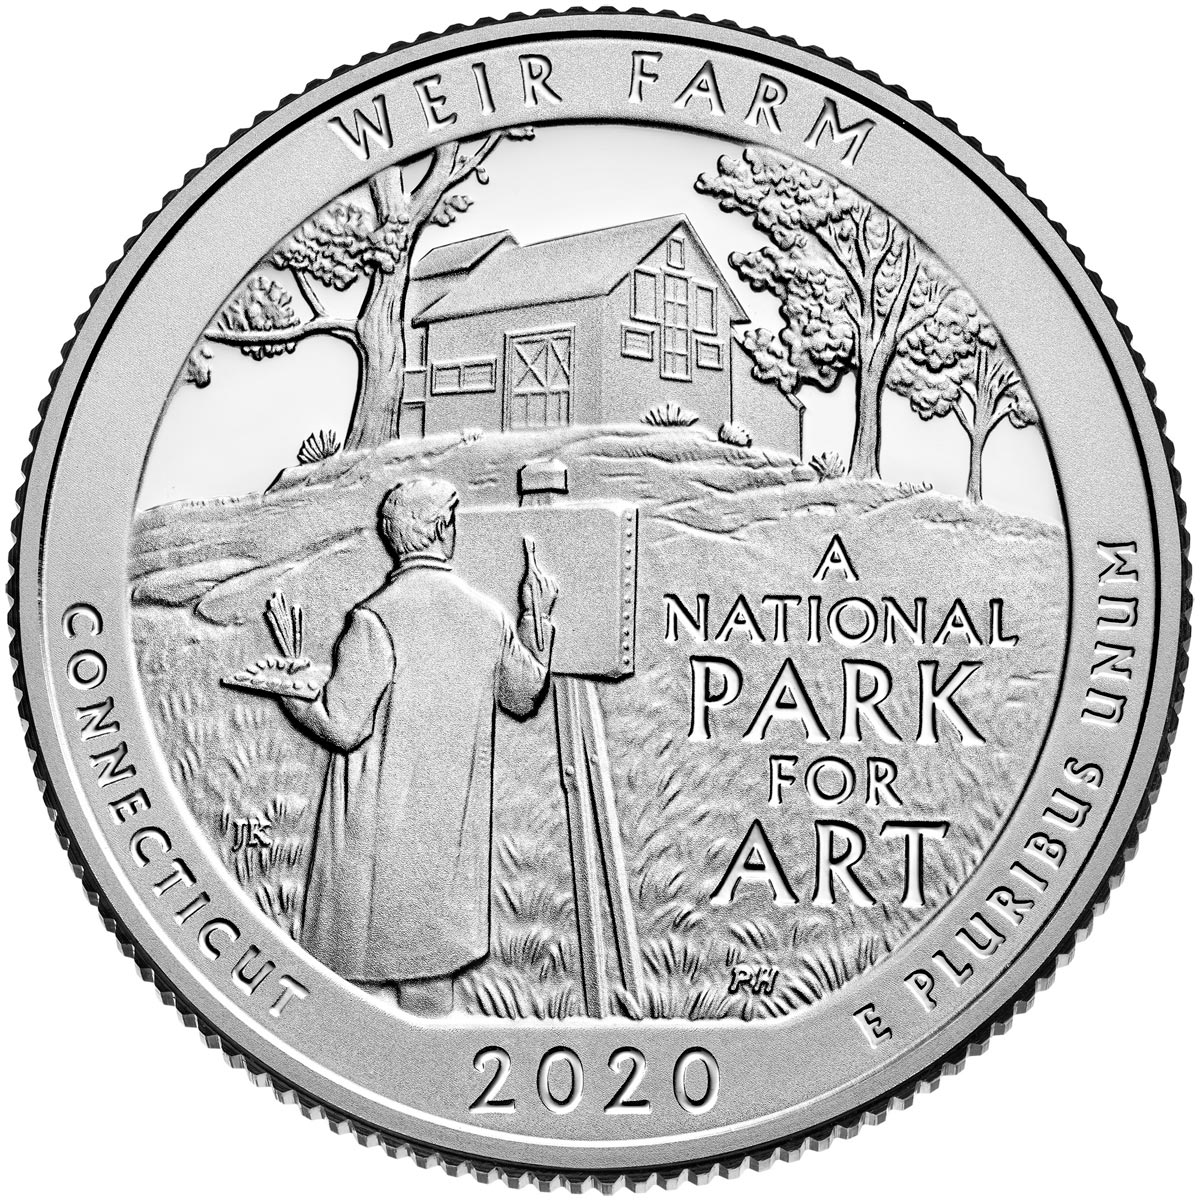 Image of 25 cents coin - Weir Farm National Historic Site | USA 2020.  The Copper–Nickel (CuNi) coin is of Proof, BU, UNC quality.